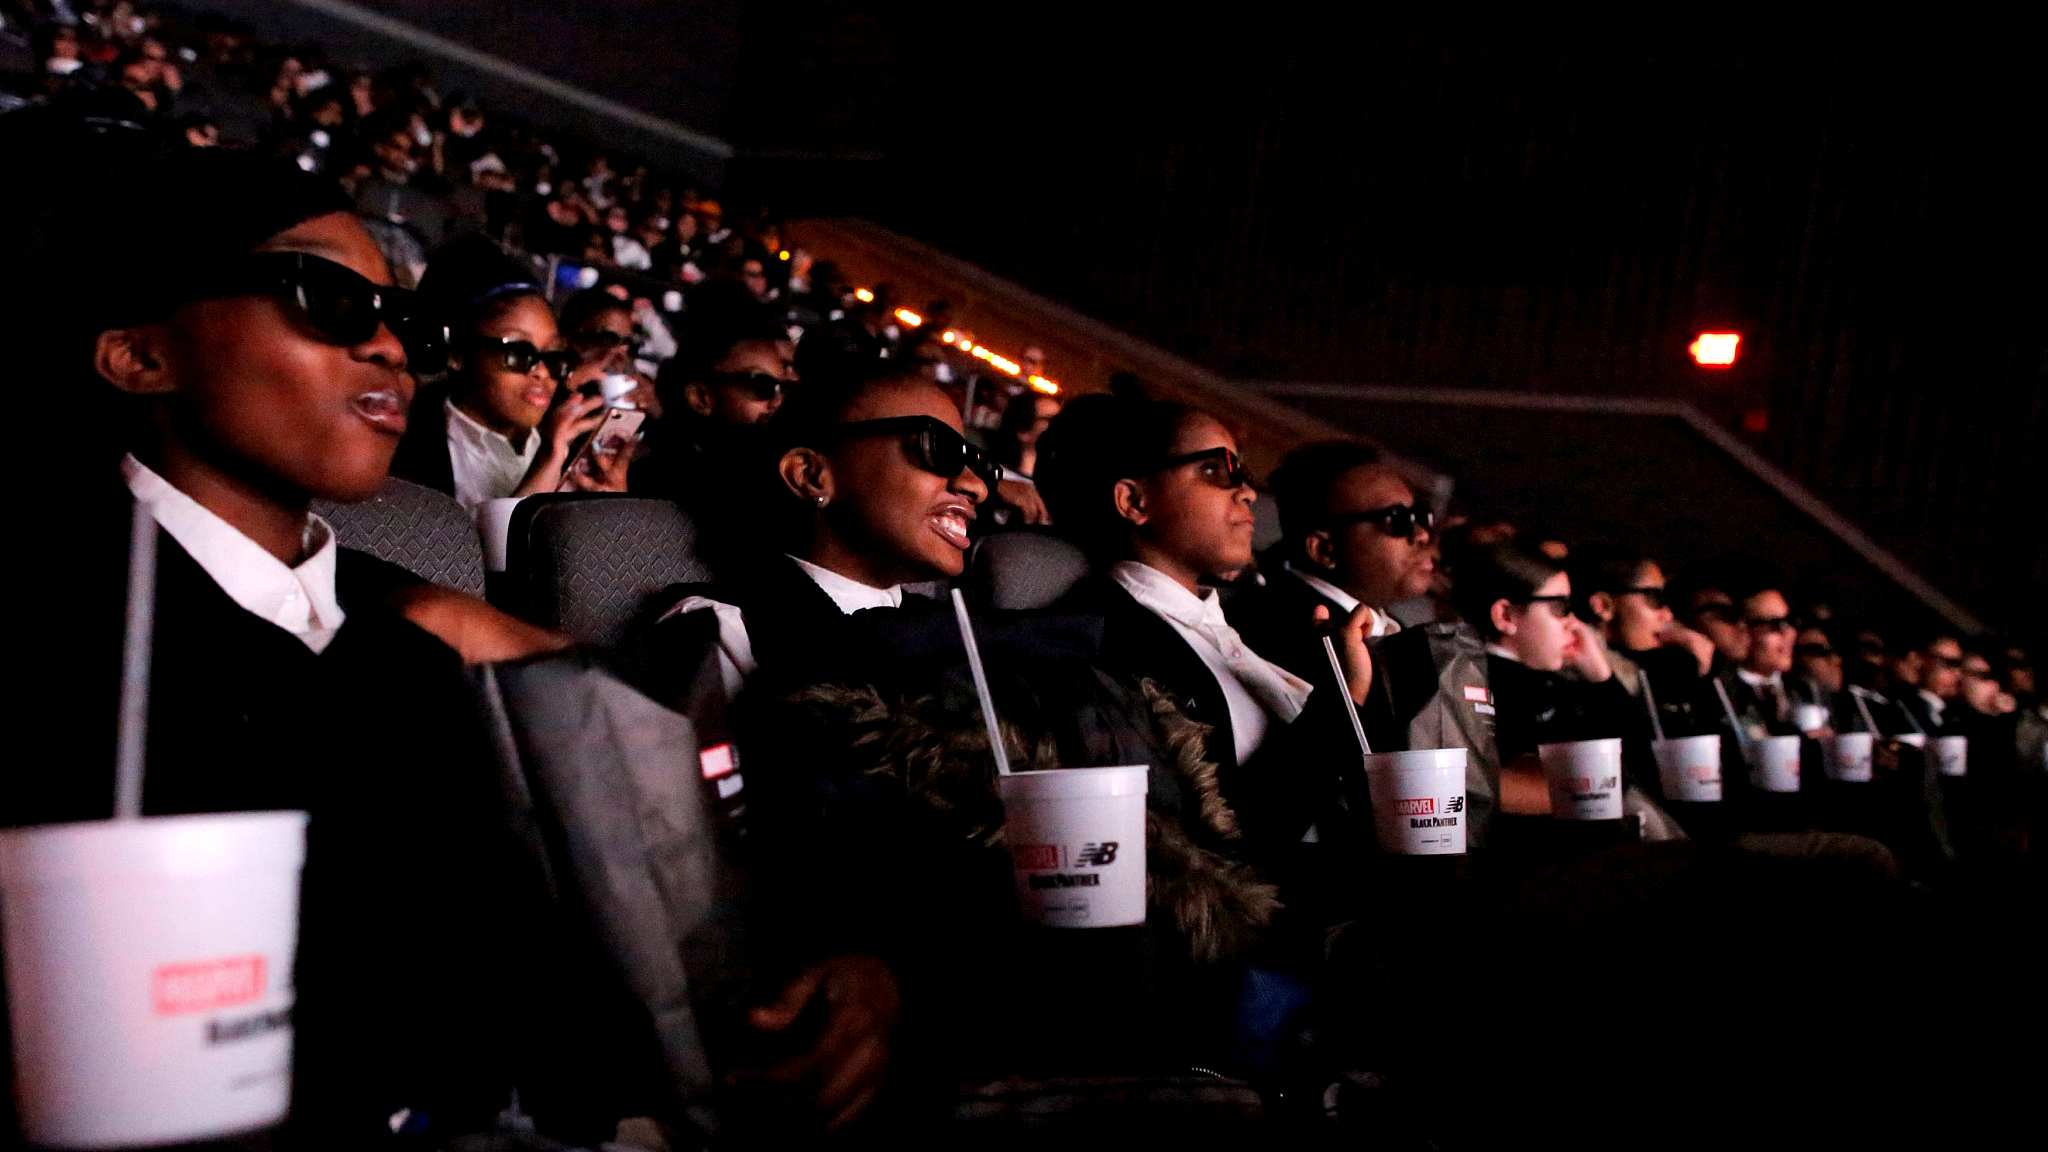 US movie theater chains fear Justice Department review may hit profits